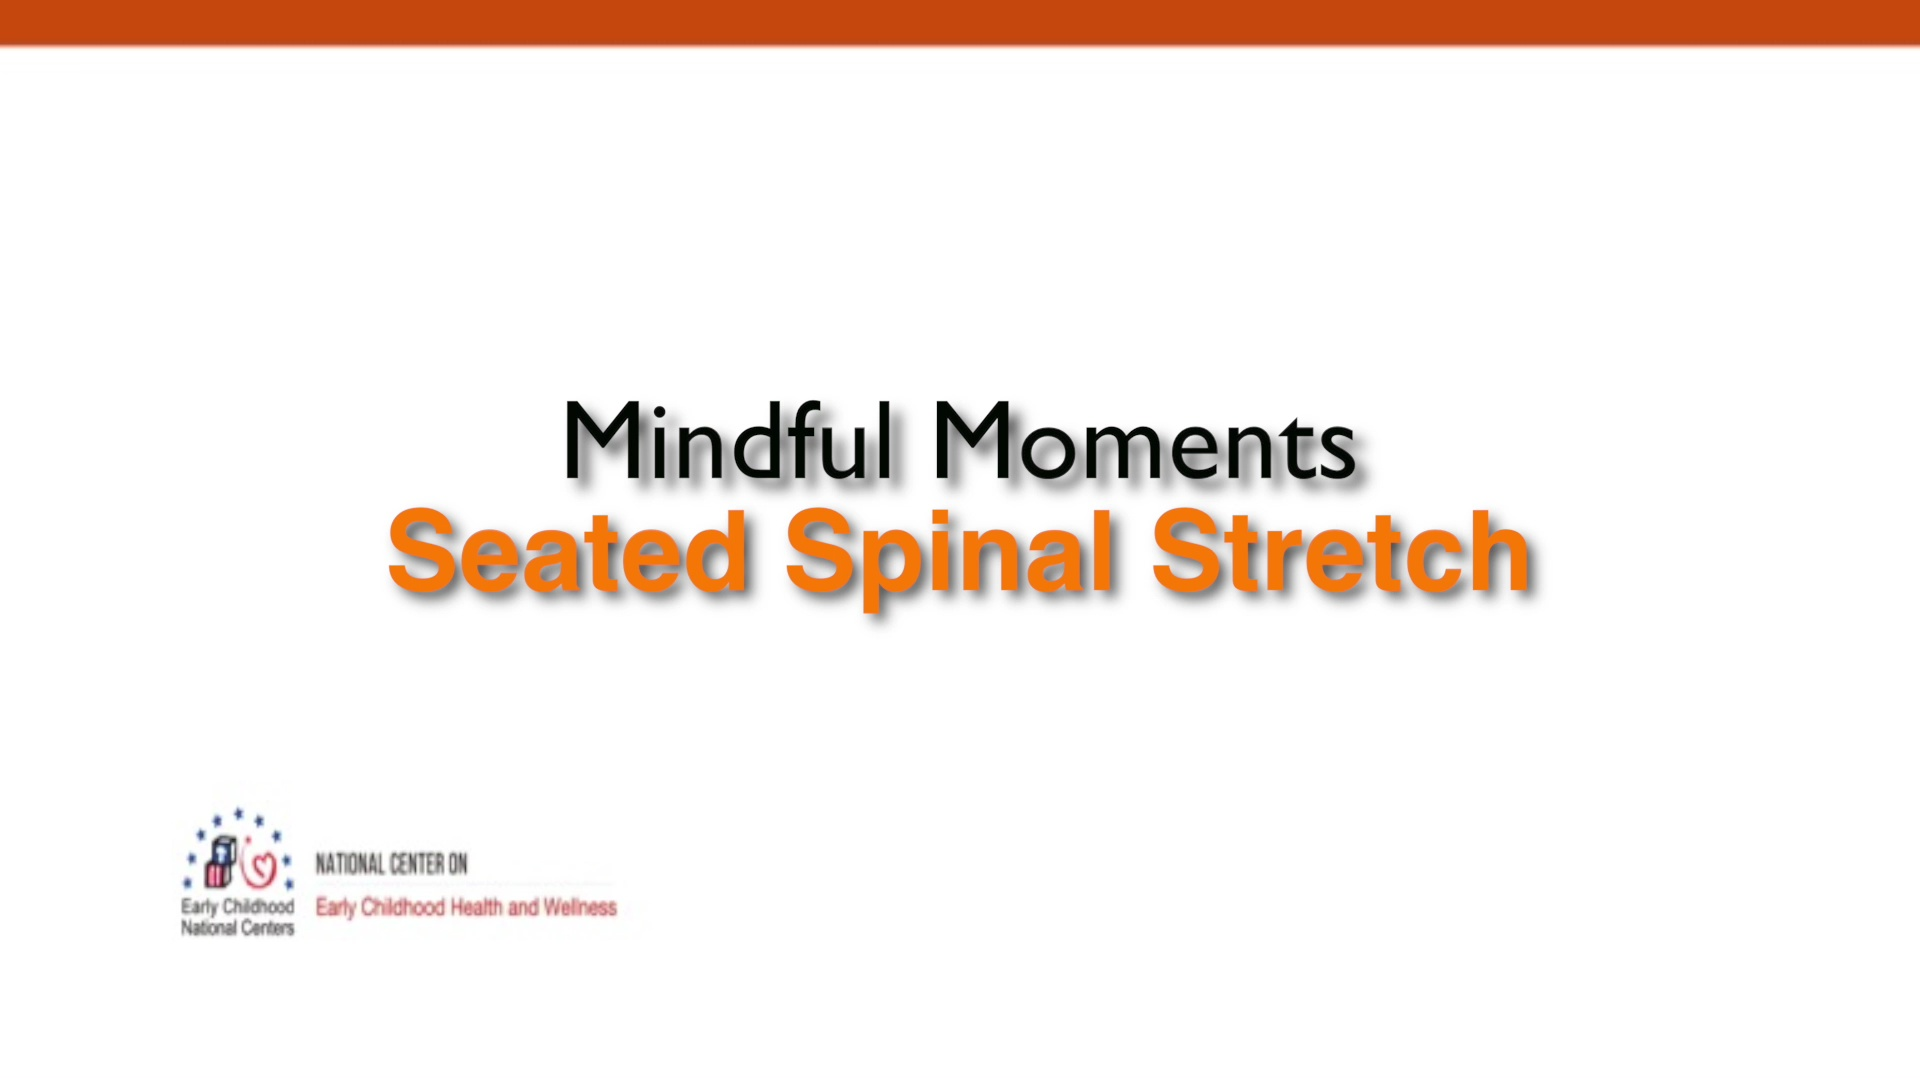 Seated Spinal Stretch